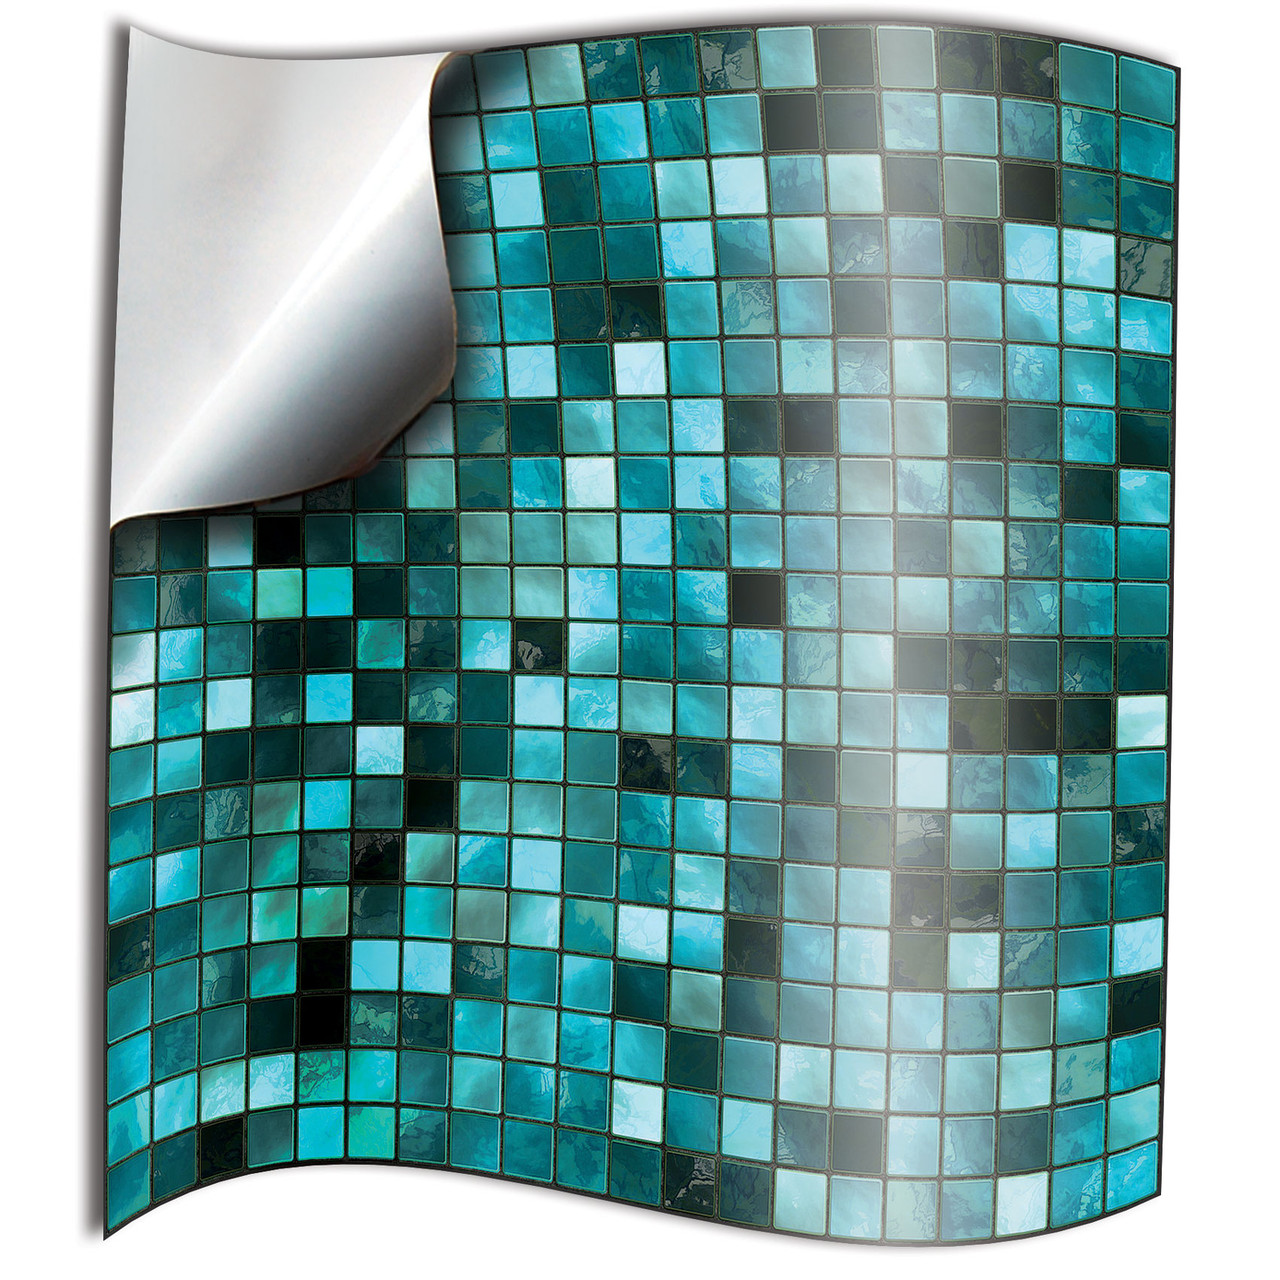 24 turquoise mosaic kitchen tile stickers 6 by 6 inches or 4x4 bathroom tile transfers decals 15x15cm 10x10cm